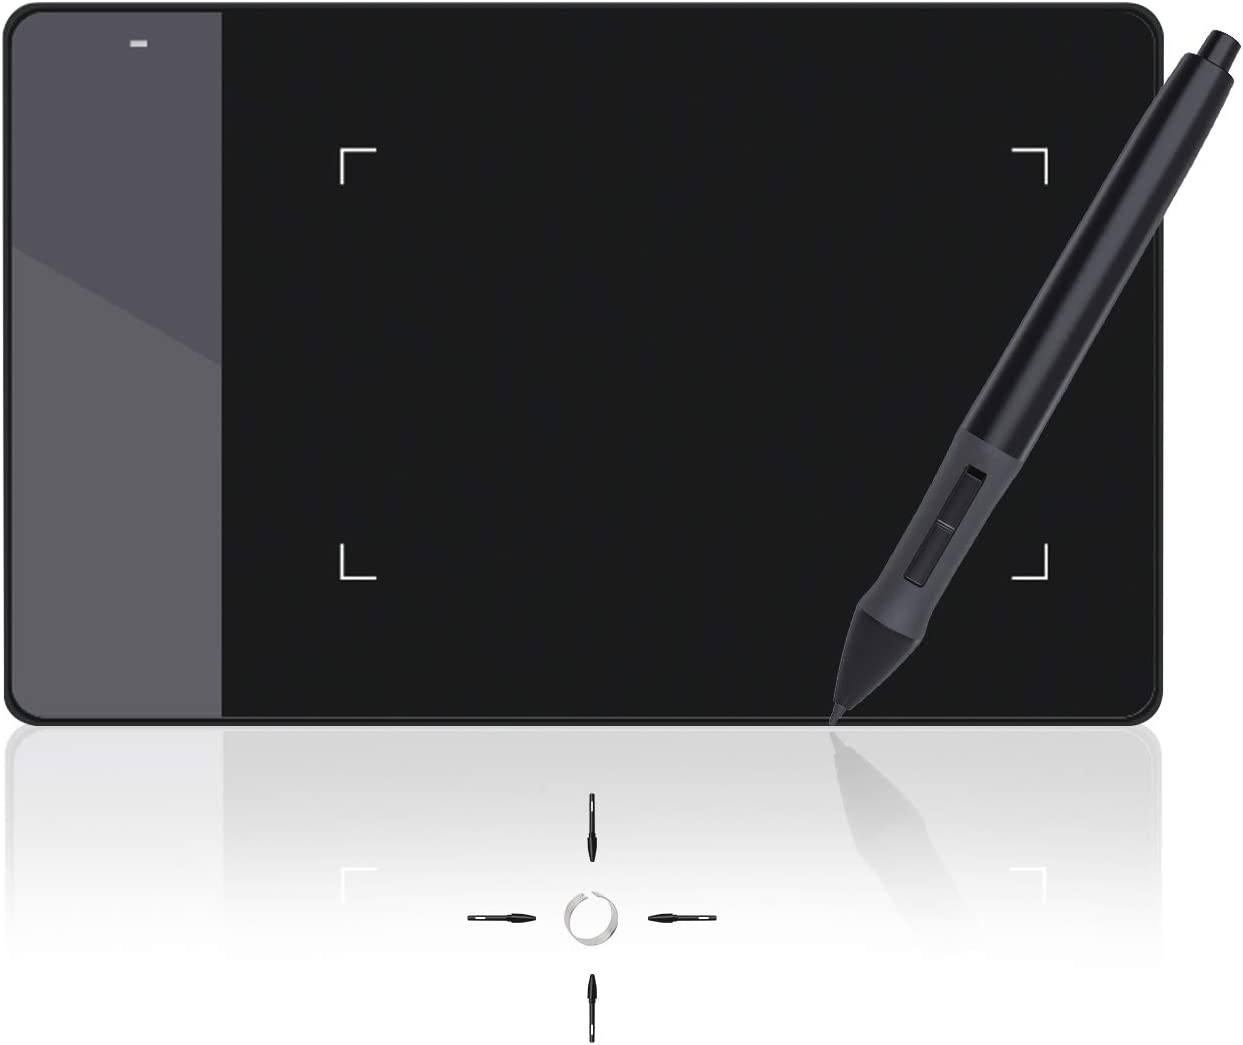 Huion 4 x 2.23 Inches OSU Tablet Graphics Drawing Pen Tablet - 420